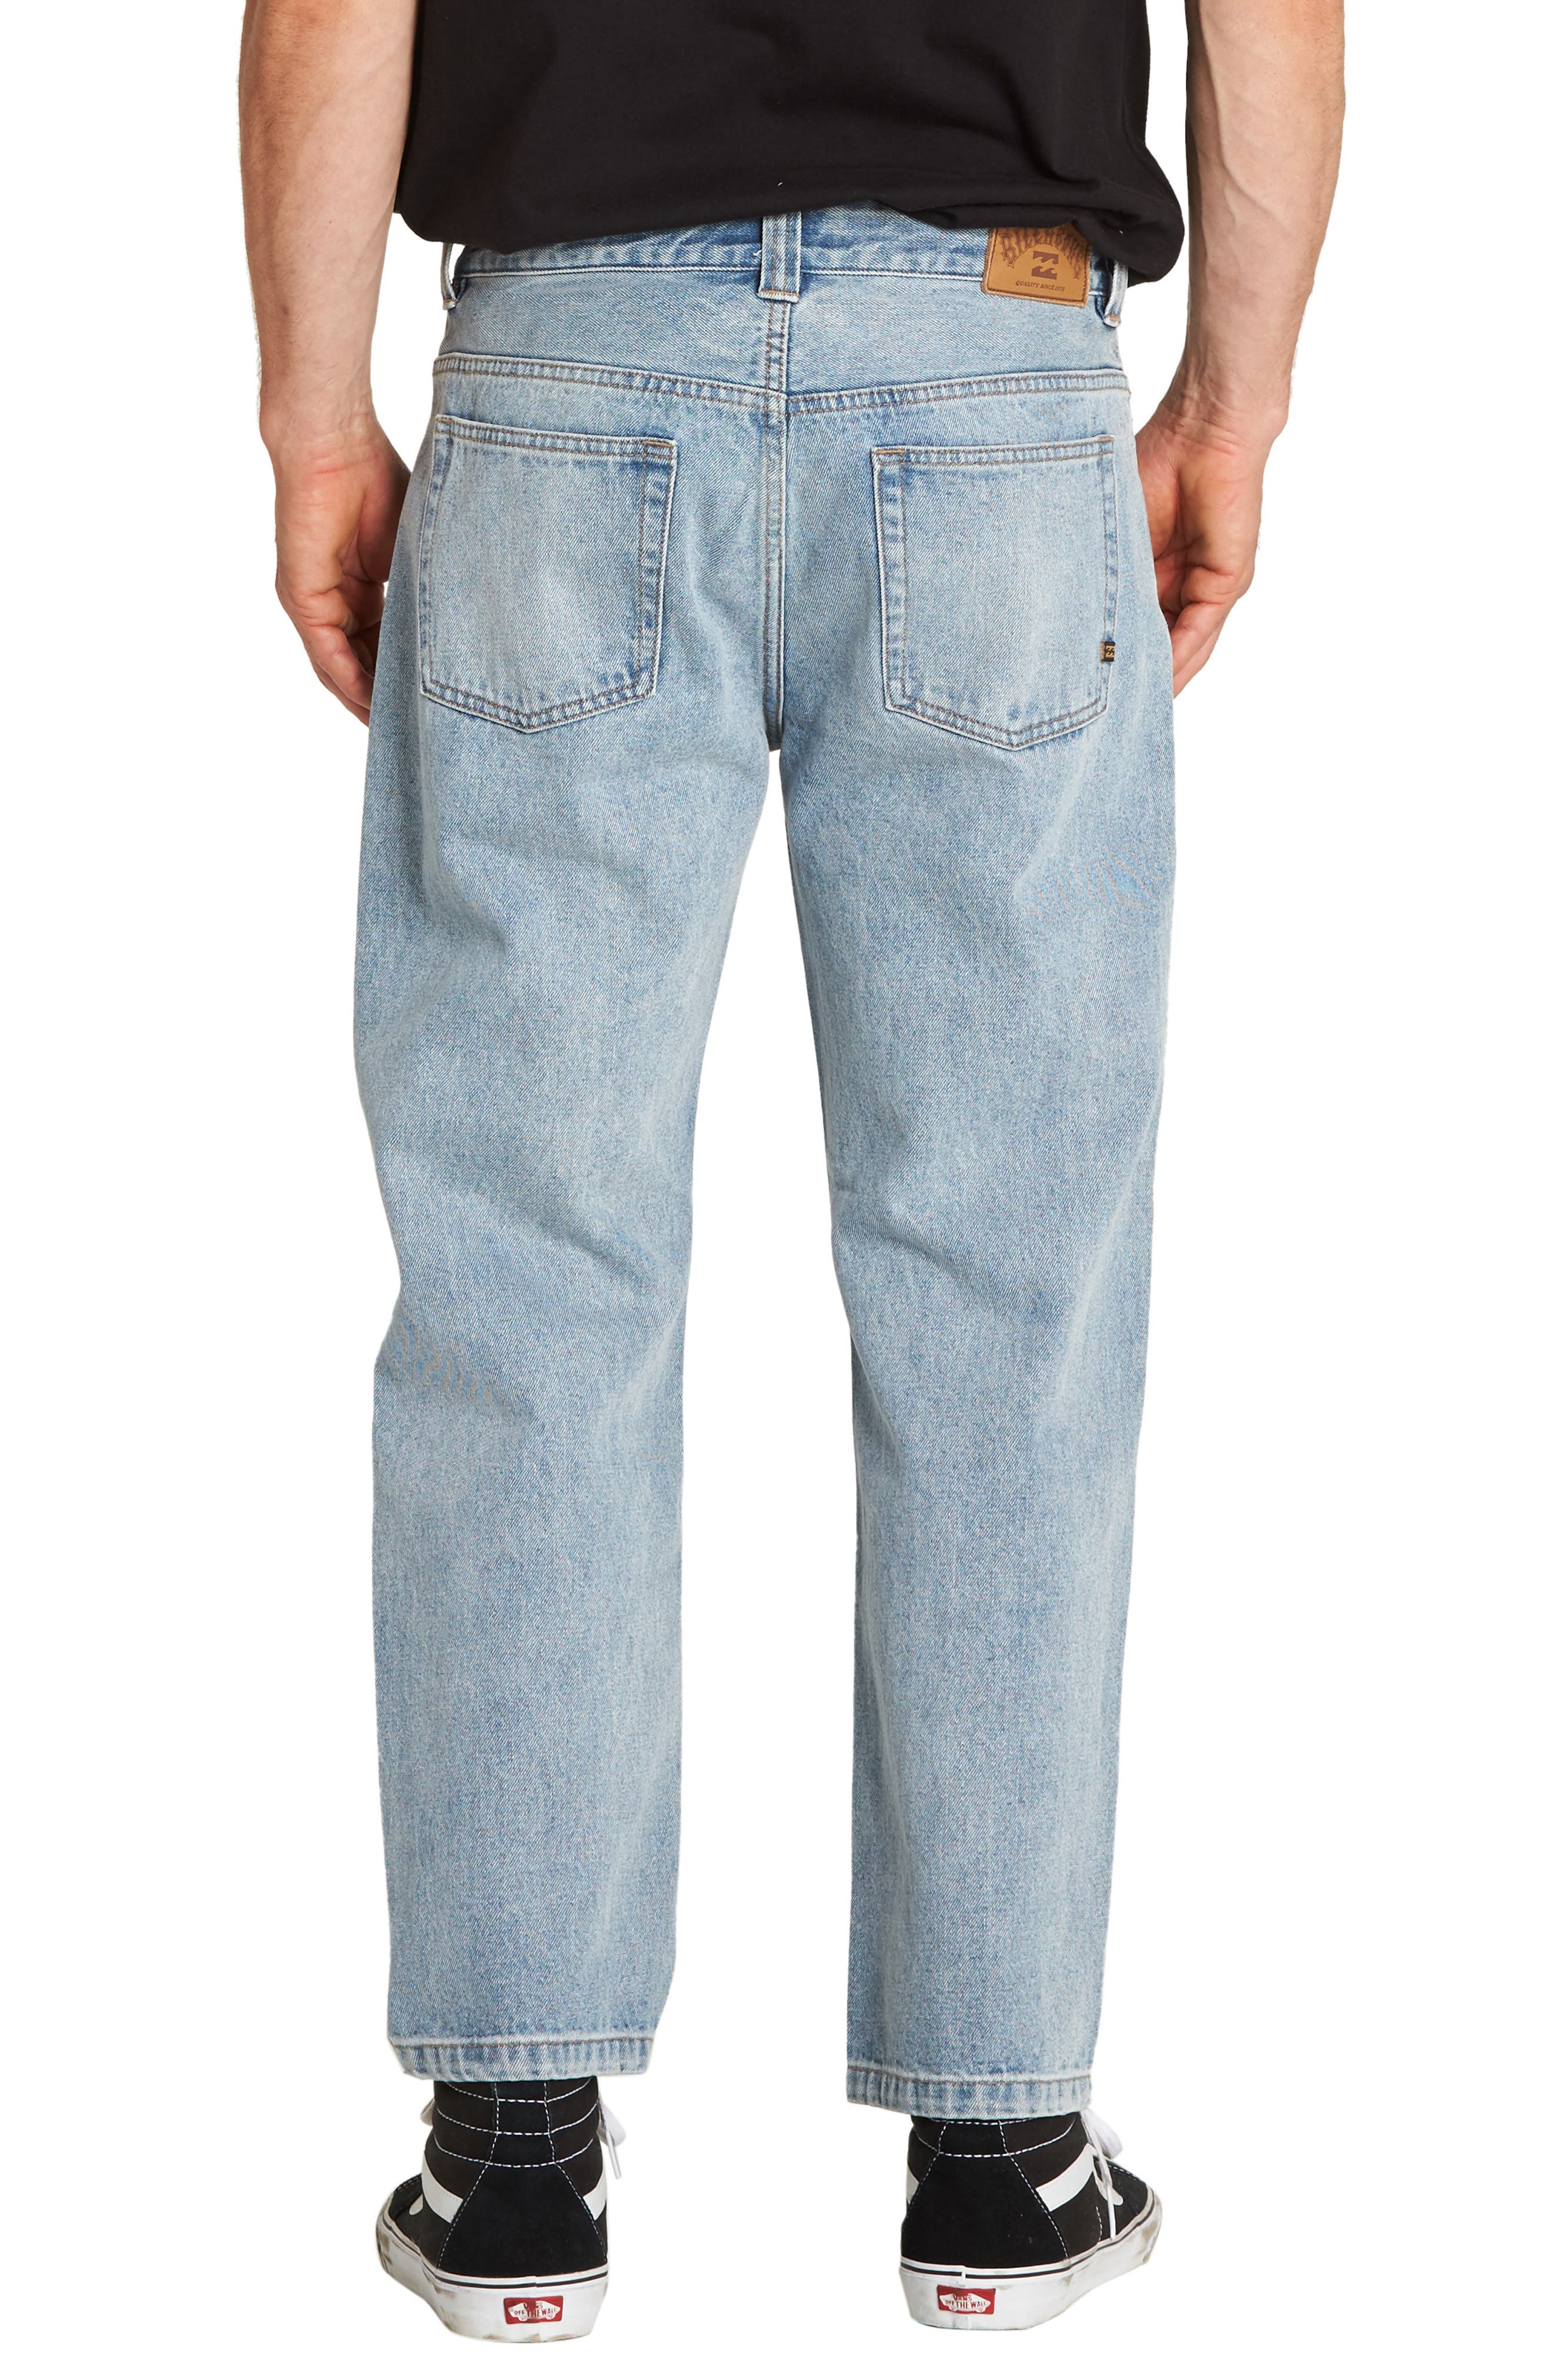 Fifty Crop Jeans,                             Alternate thumbnail 2, color,                             INDIGO BLEACH